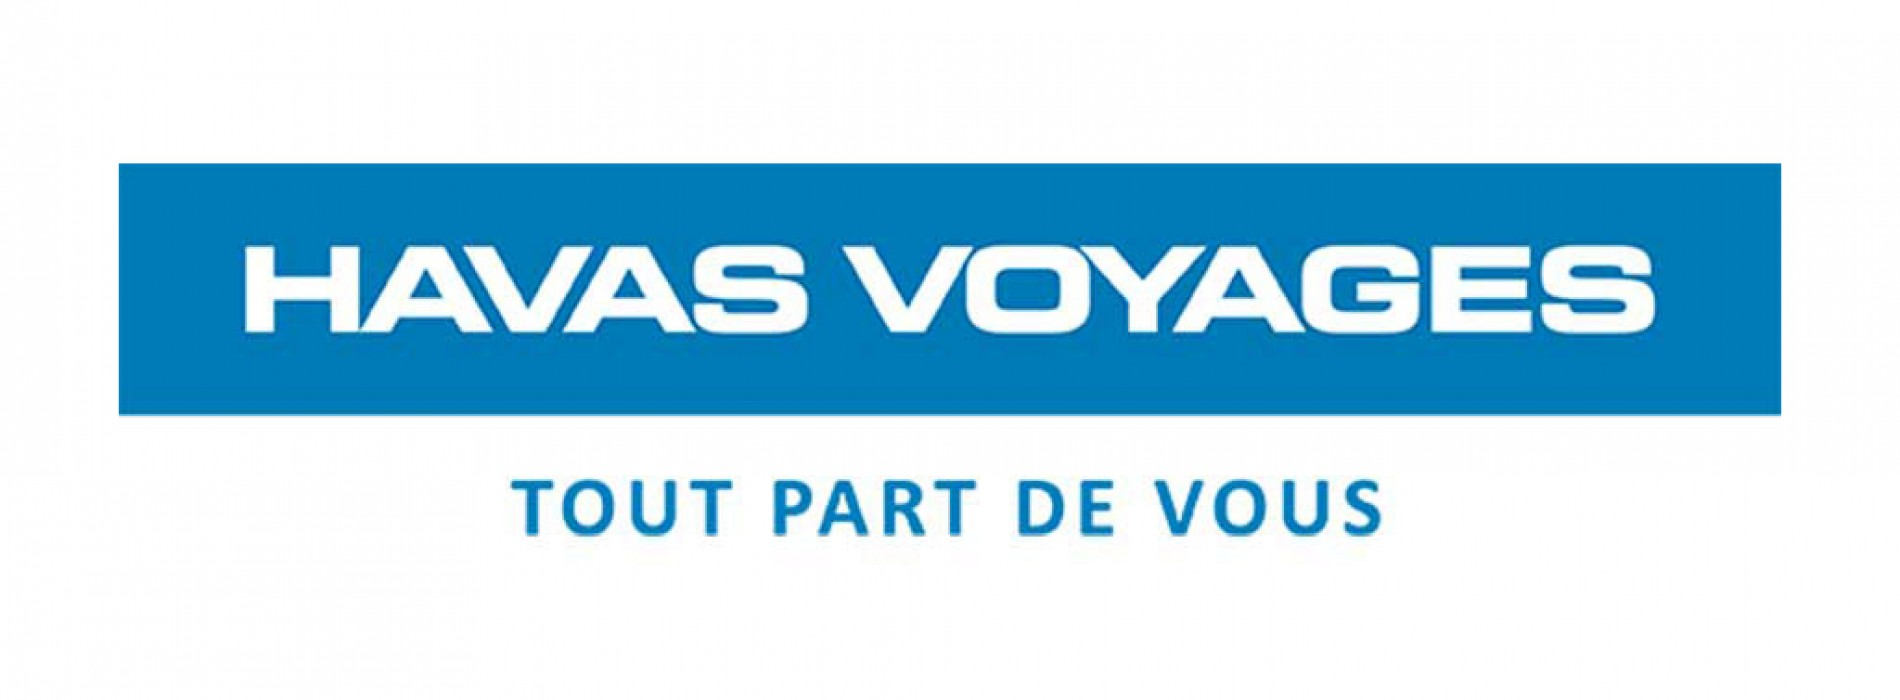 Sports Events 365 sees a sharp rise in its French Presence following deal with Havas Voyages